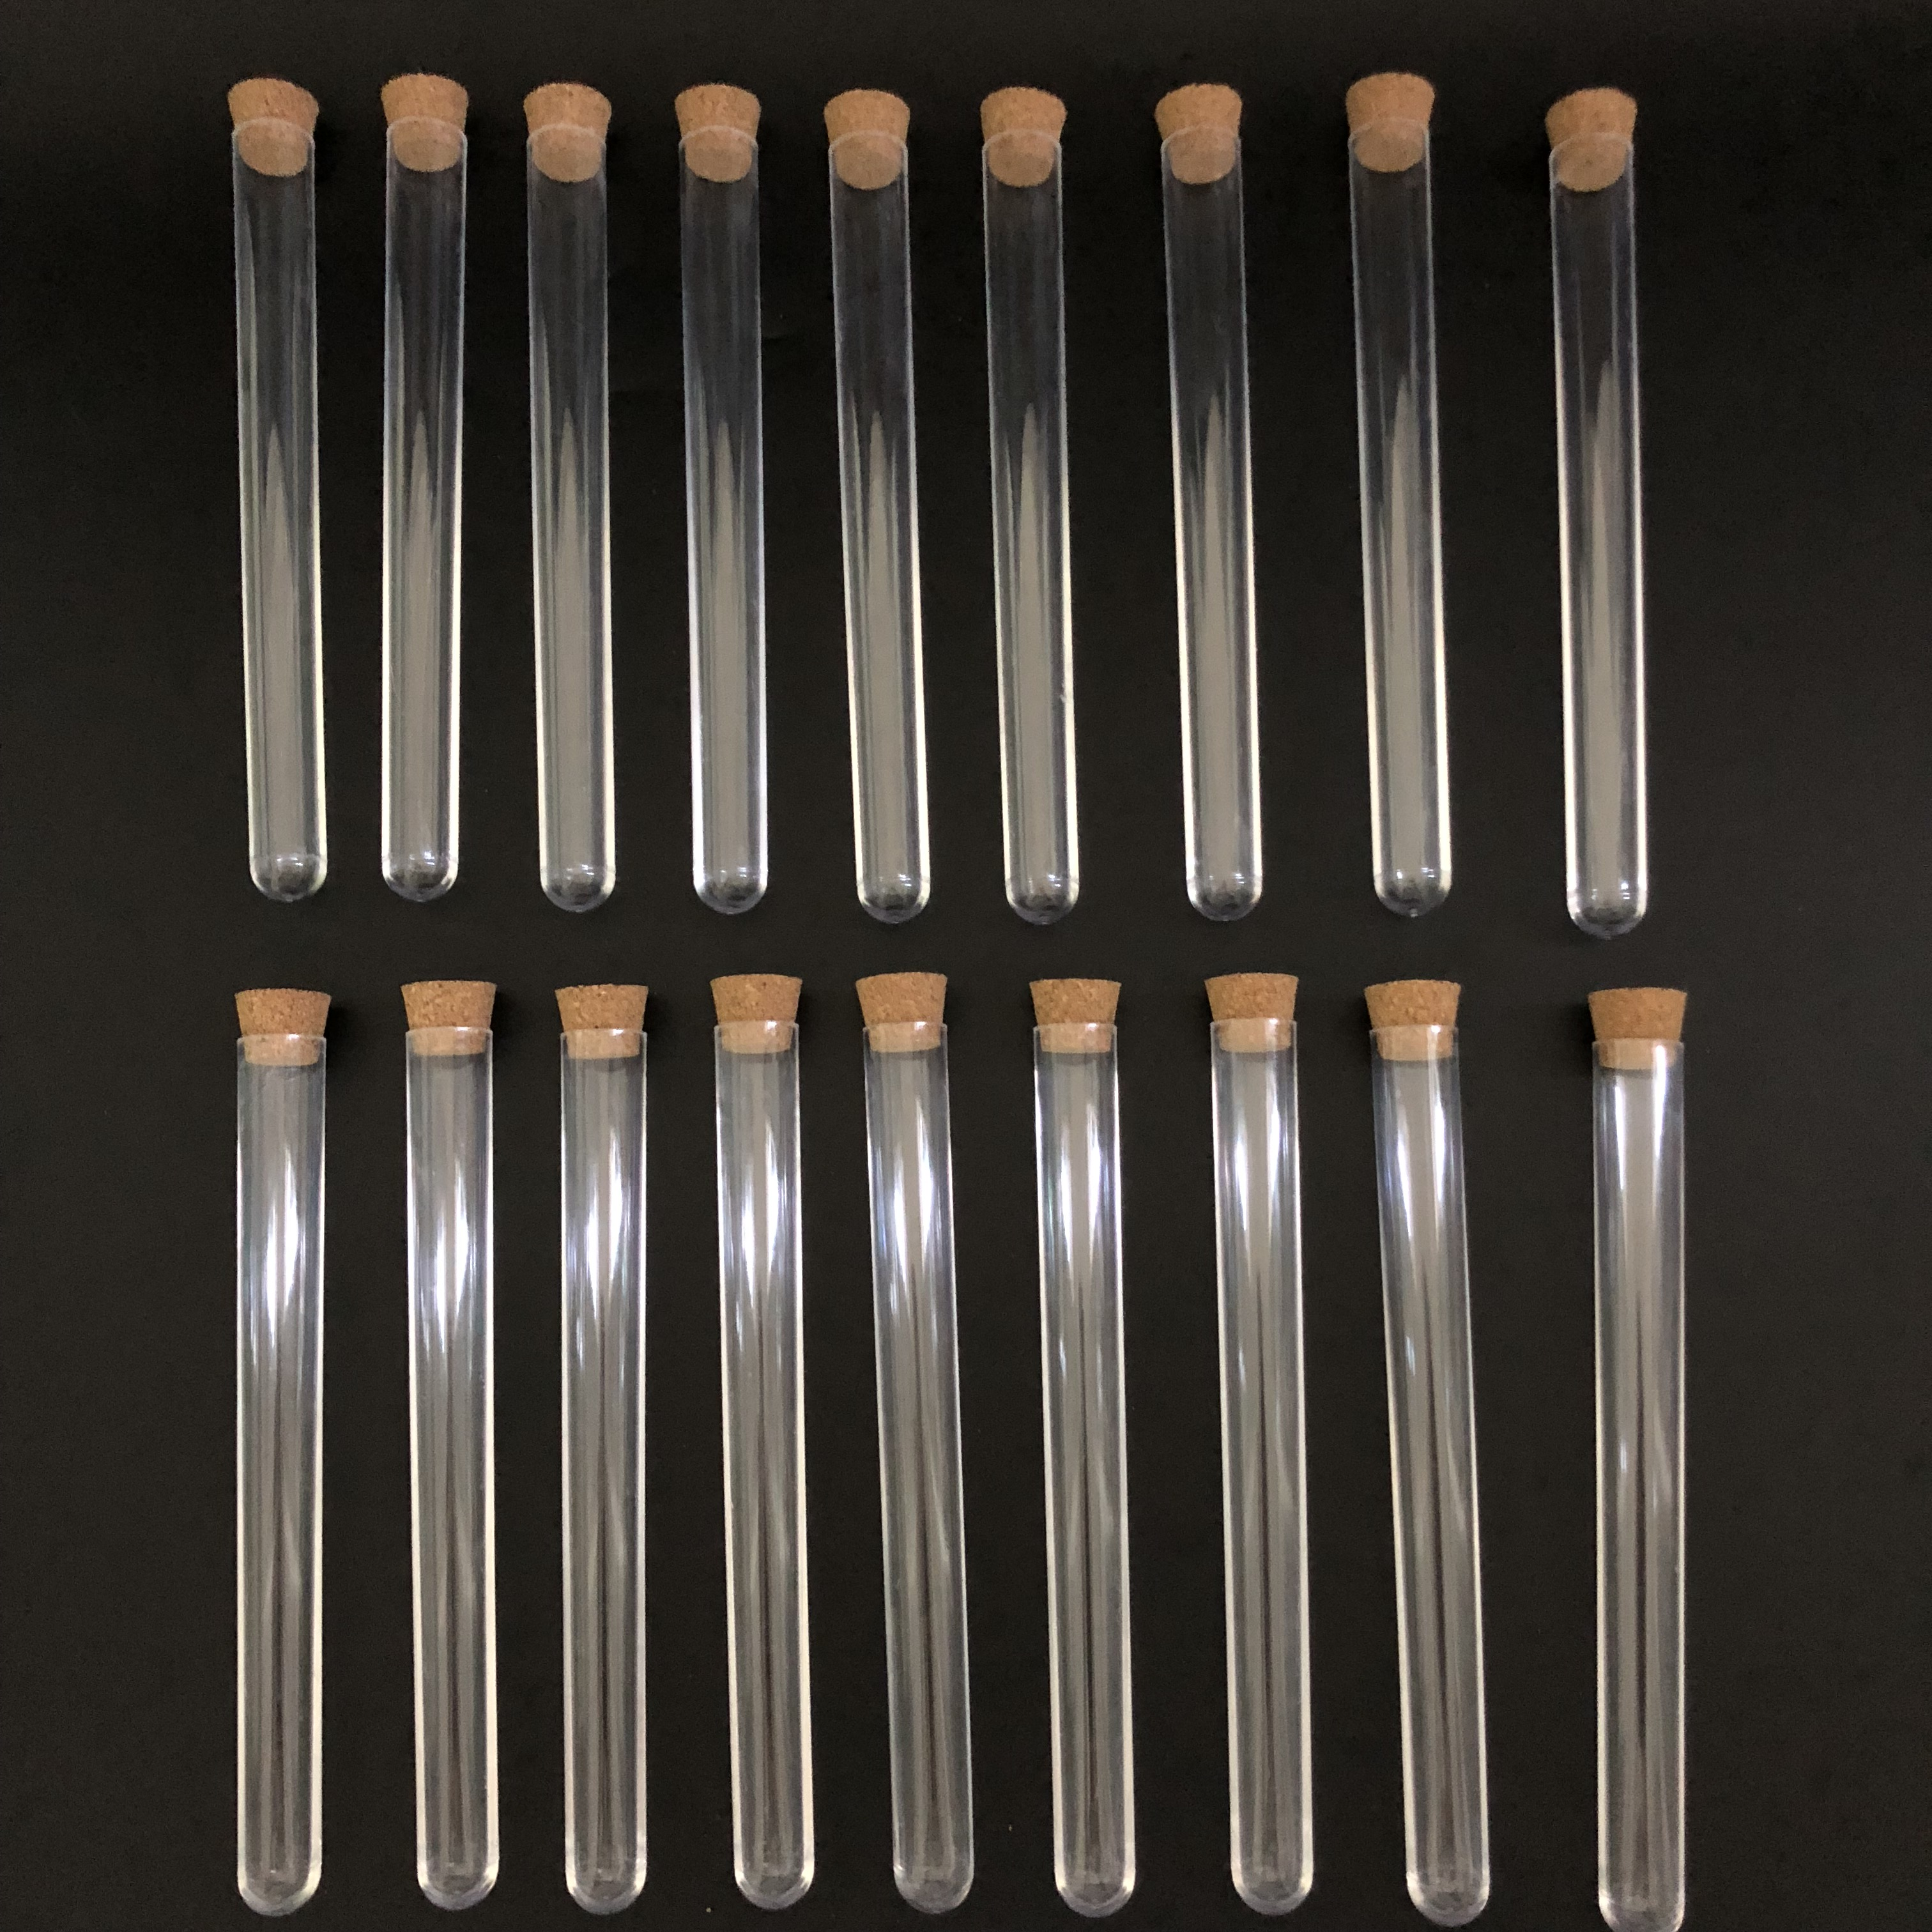 (10pcs/pack) 15x150mm Clear Plastic Test Tubes With Corks Stopper U-shape Bottem Used For Laboratory Or Wedding Vial